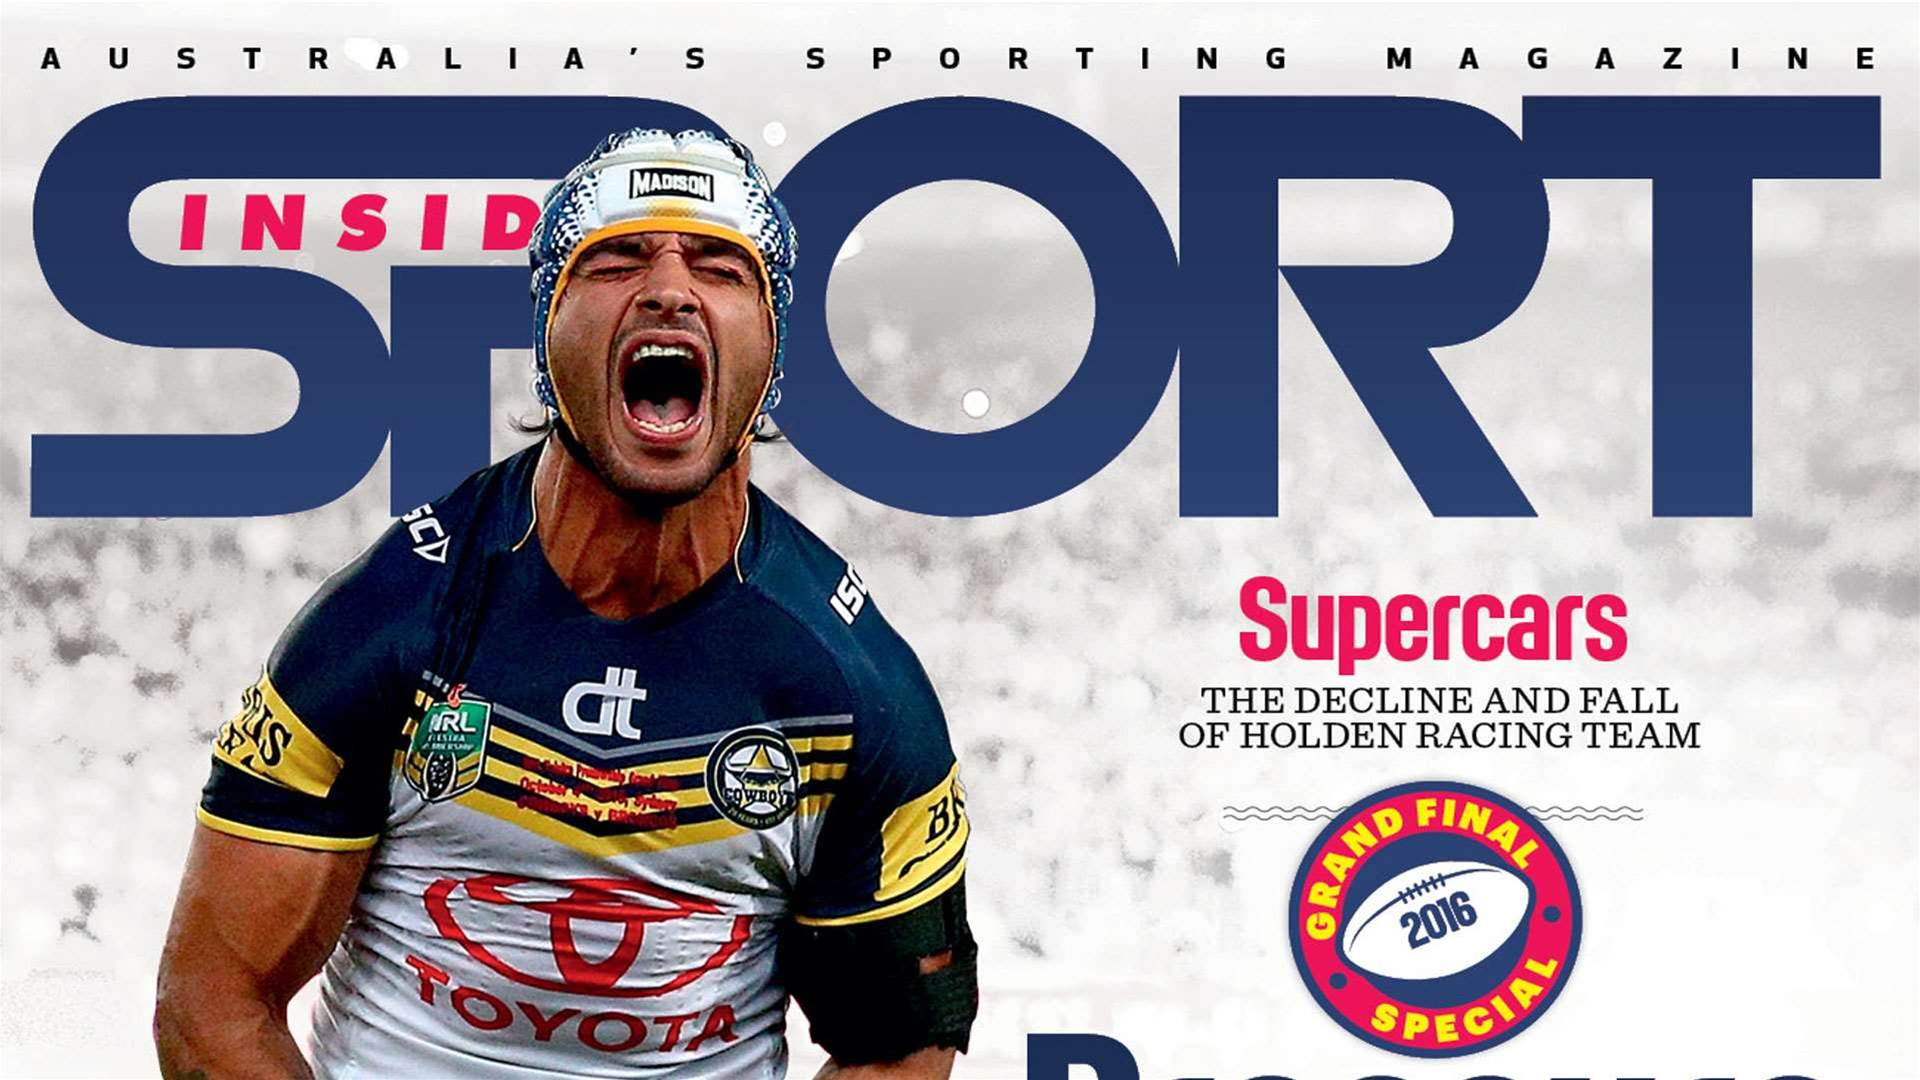 Grand final pressure issue out now